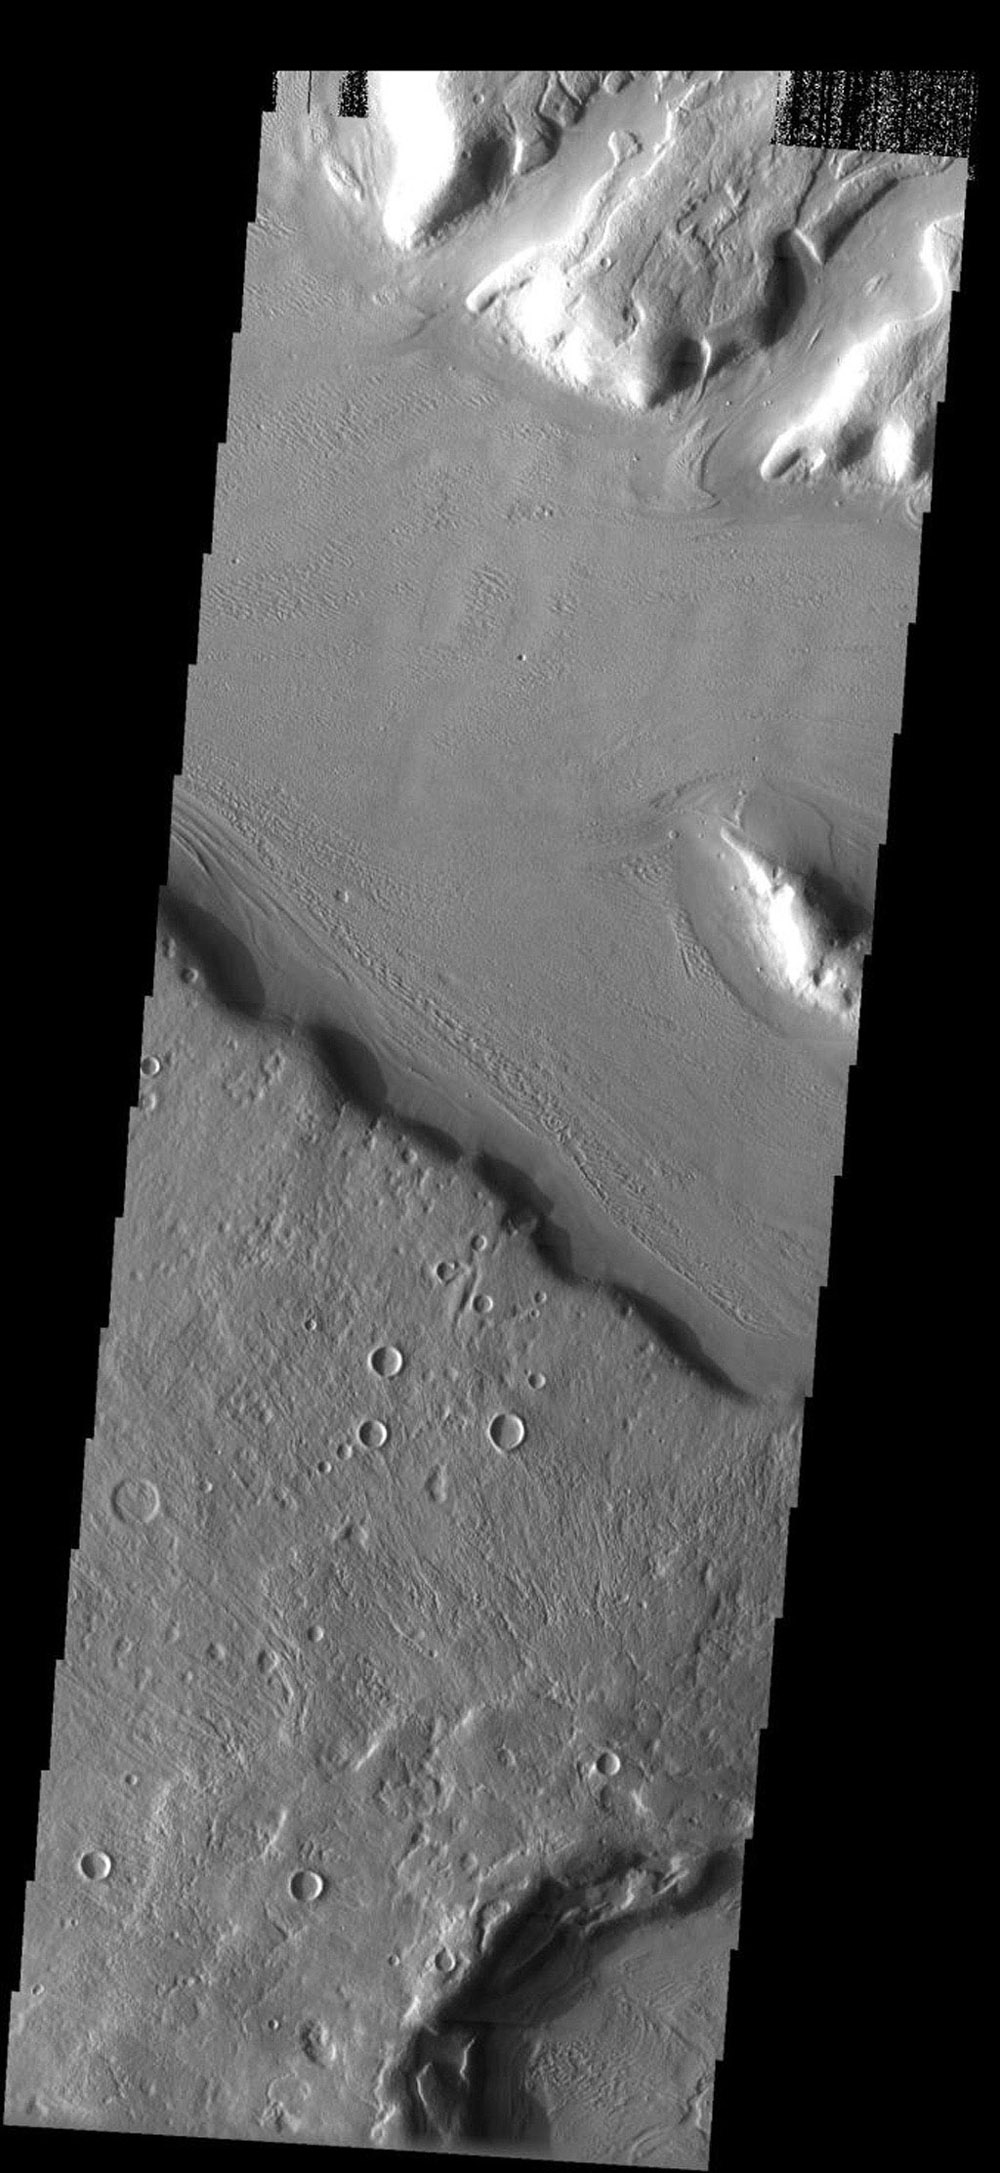 This image from NASA's Mars Odyssey shows lines indicative of flow in a valley floor on Mars cut across similar lines in a slightly smaller valley, indicating both that material flowed along the valley floor.